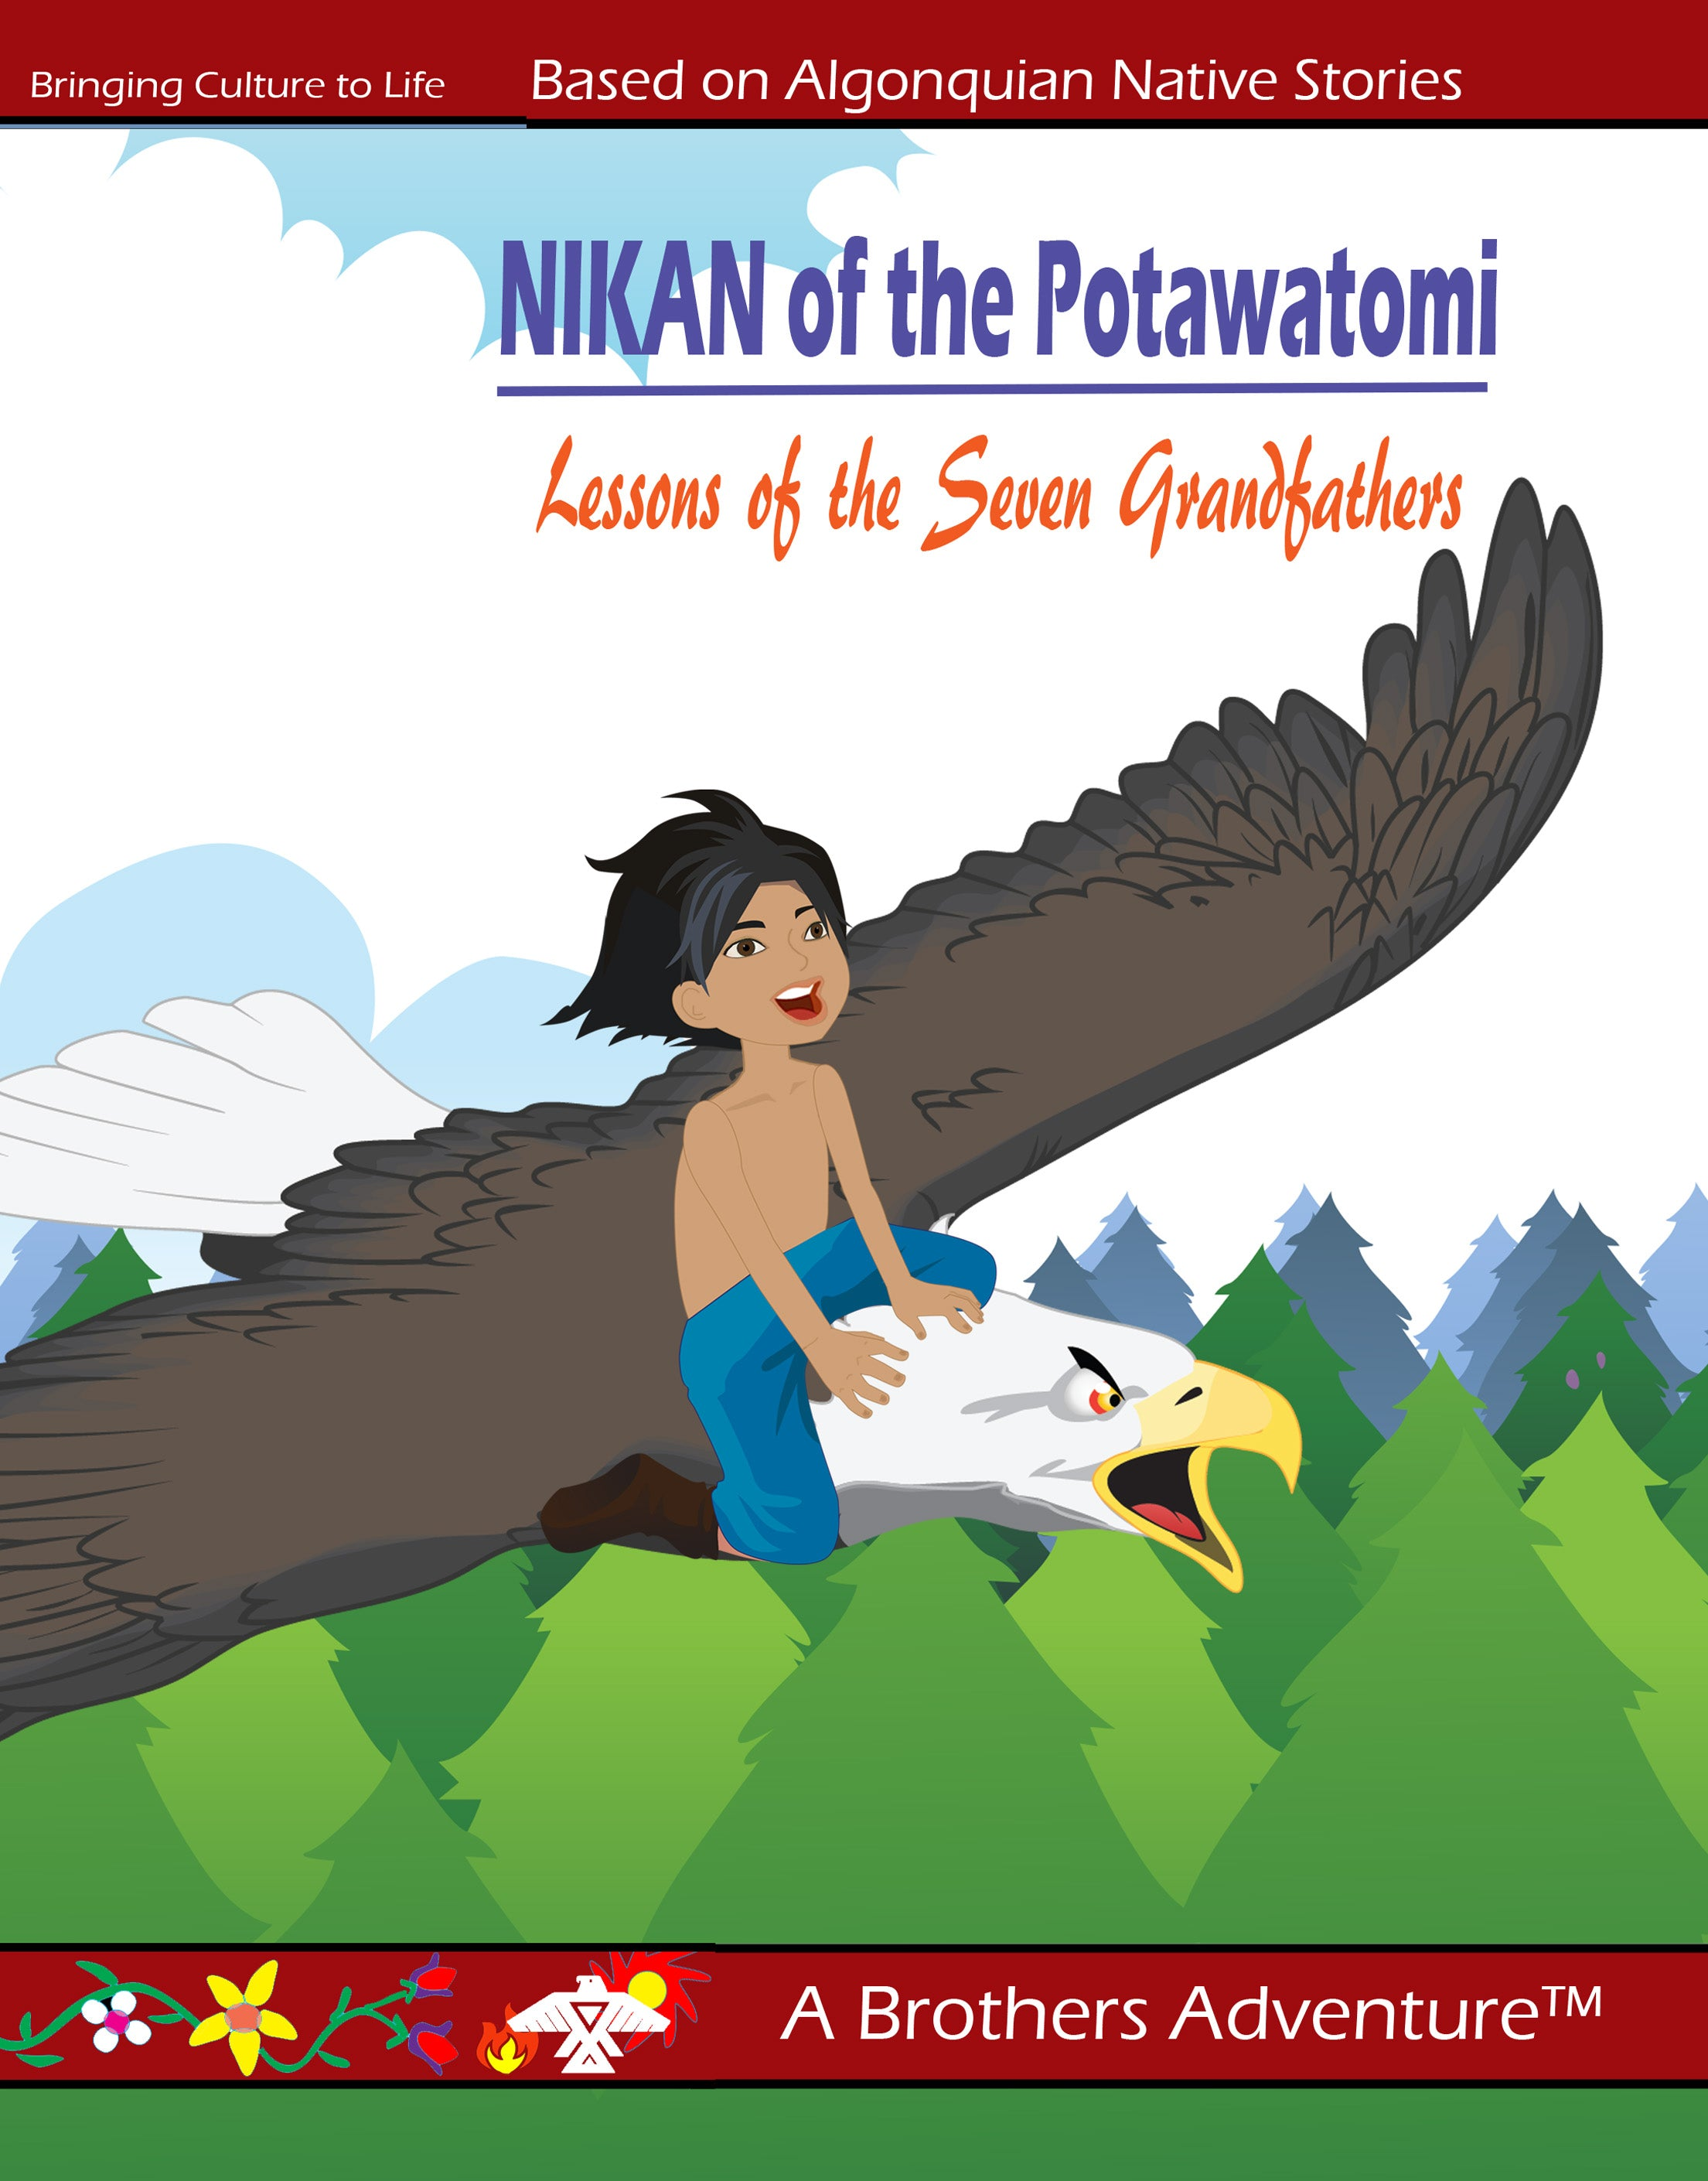 NIKAN of the Potawatomi Lessons of the Seven Grandfathers